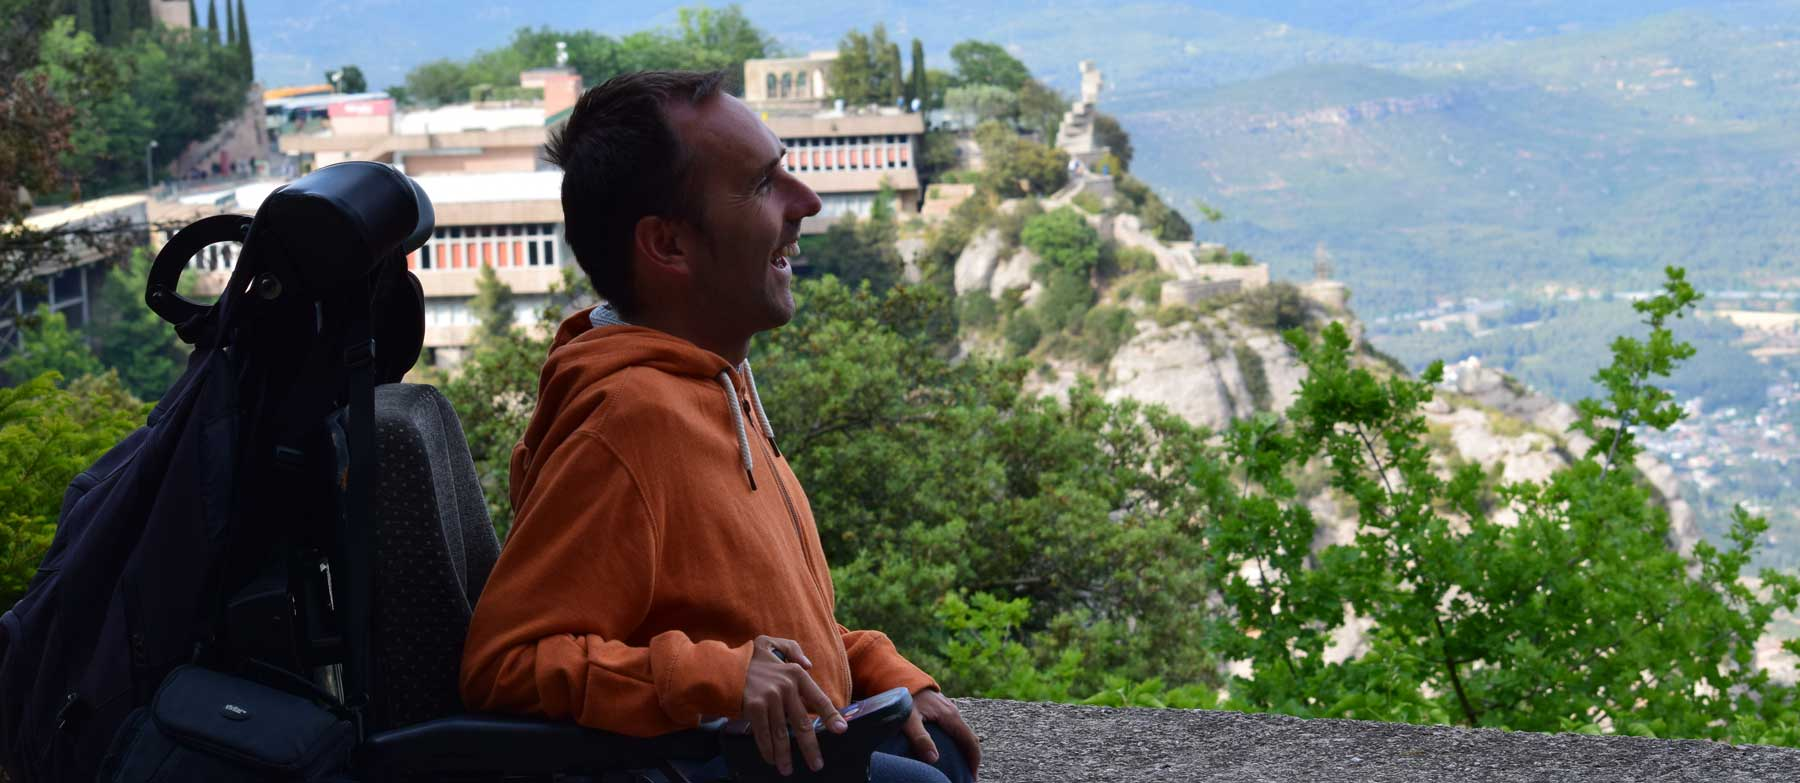 Martyn Sibley: World Changing Blogger